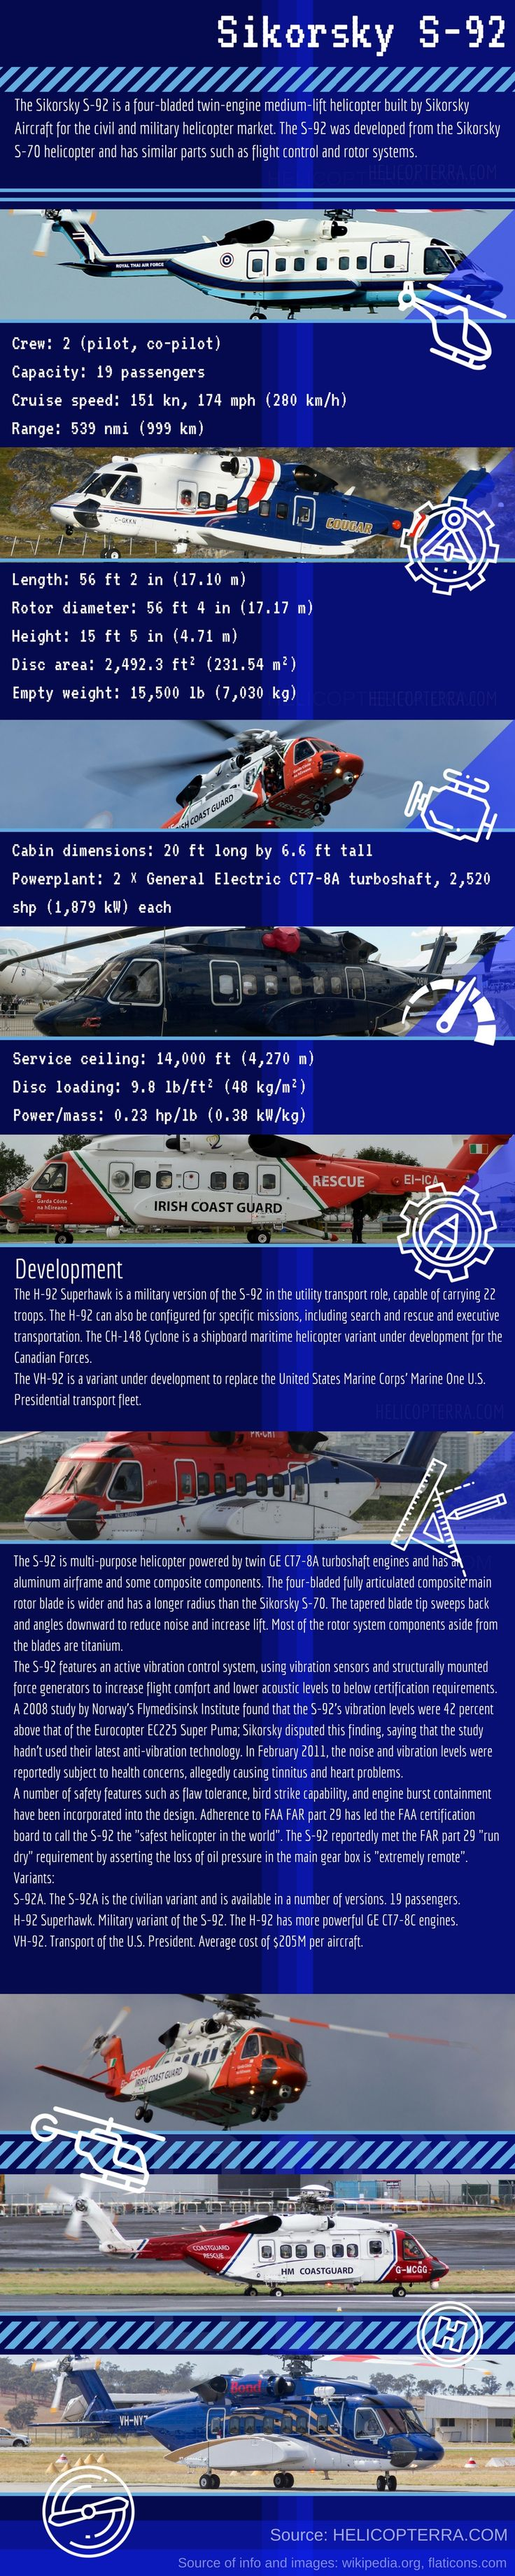 Sikorsky S92 infographic - helicopter, helicopterra.com